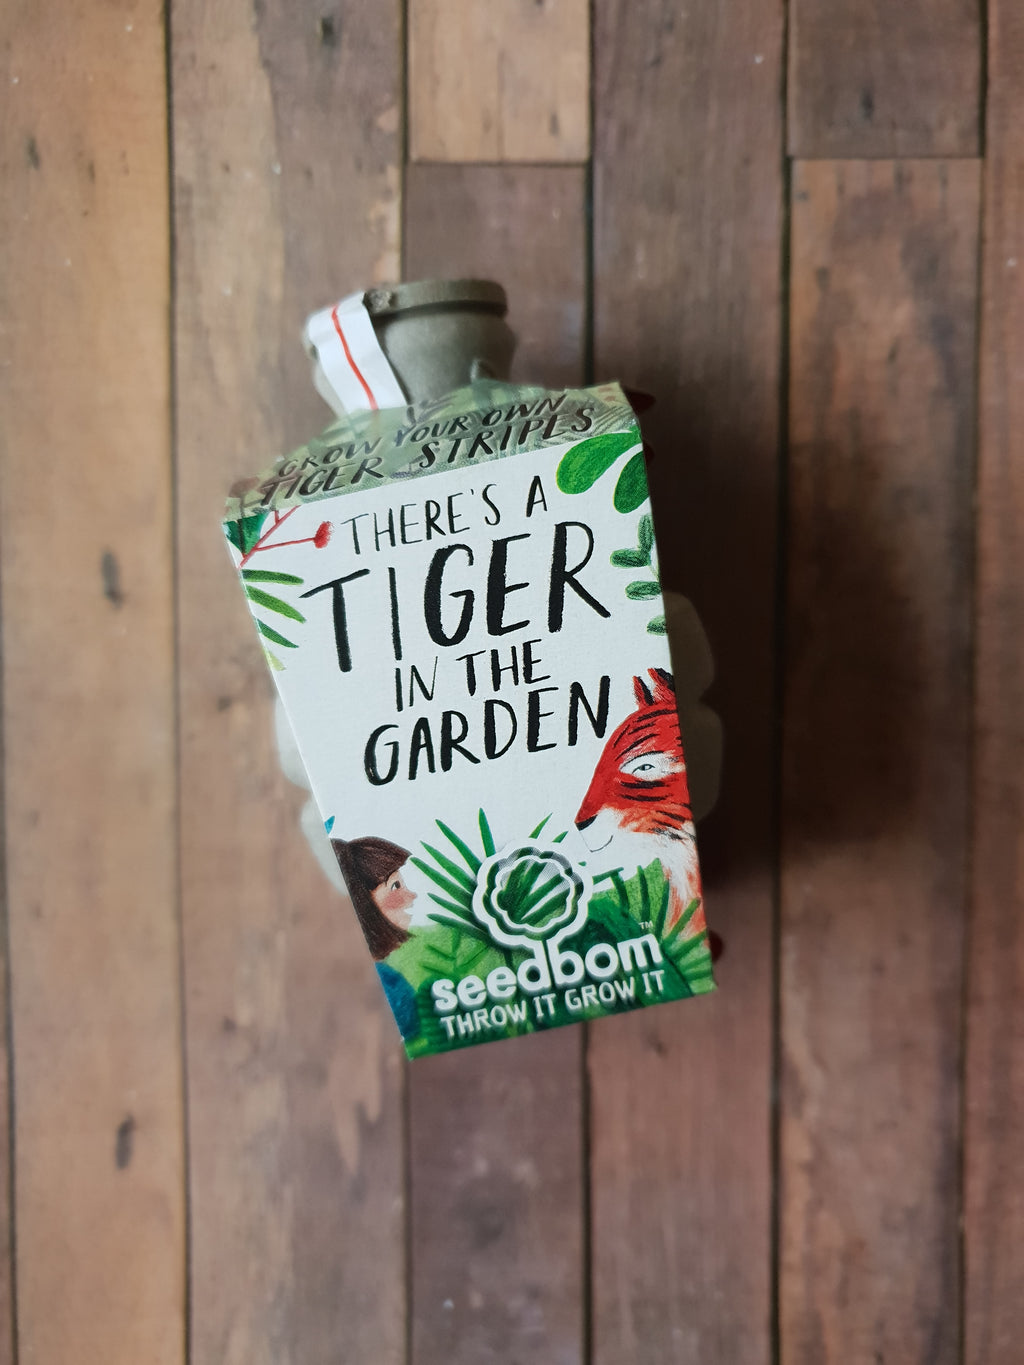 Kabloom Seedbom - There's a Tiger in the Garden!